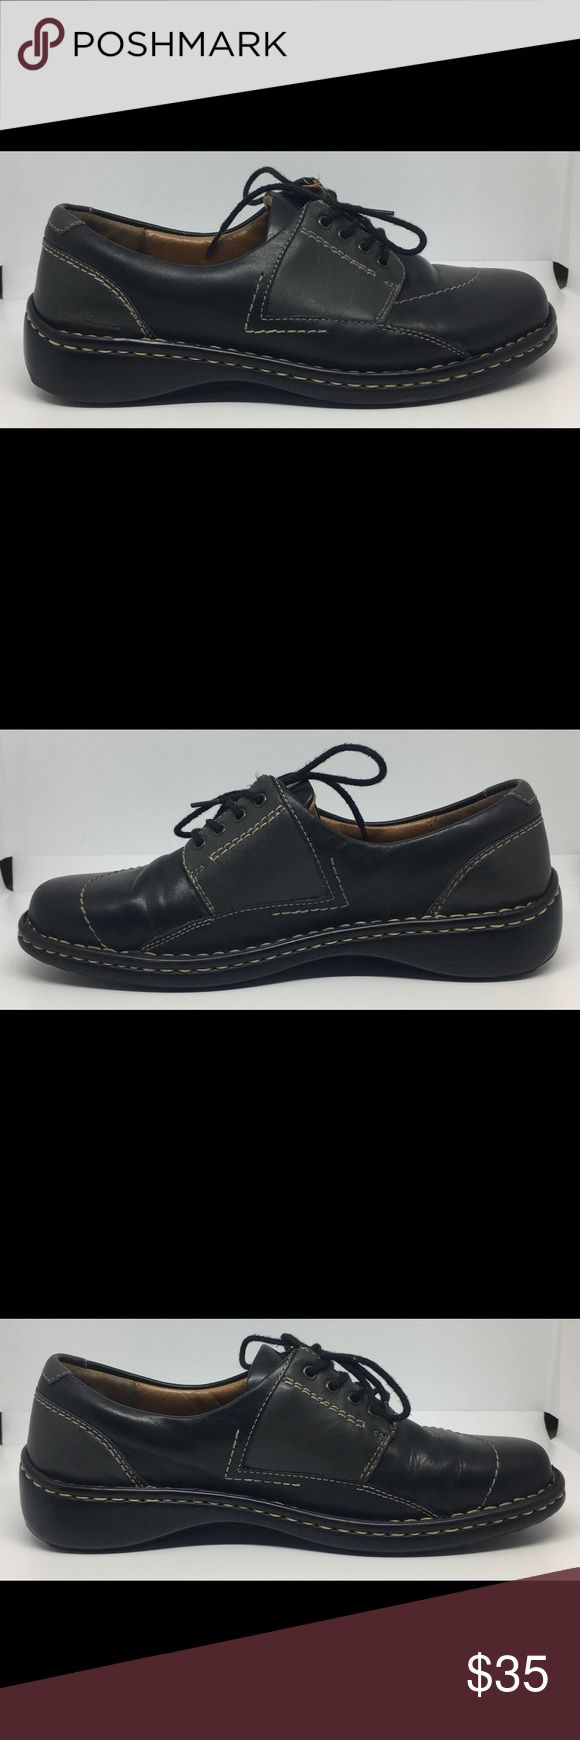 Women's Josef Seibel Oxford Shoes - Sz EUR 39 US 8 Worn a few times. Has slight wear but still in Good Condition. See Pictures. Bed A14 Josef Seibel Shoes Flats & Loafers